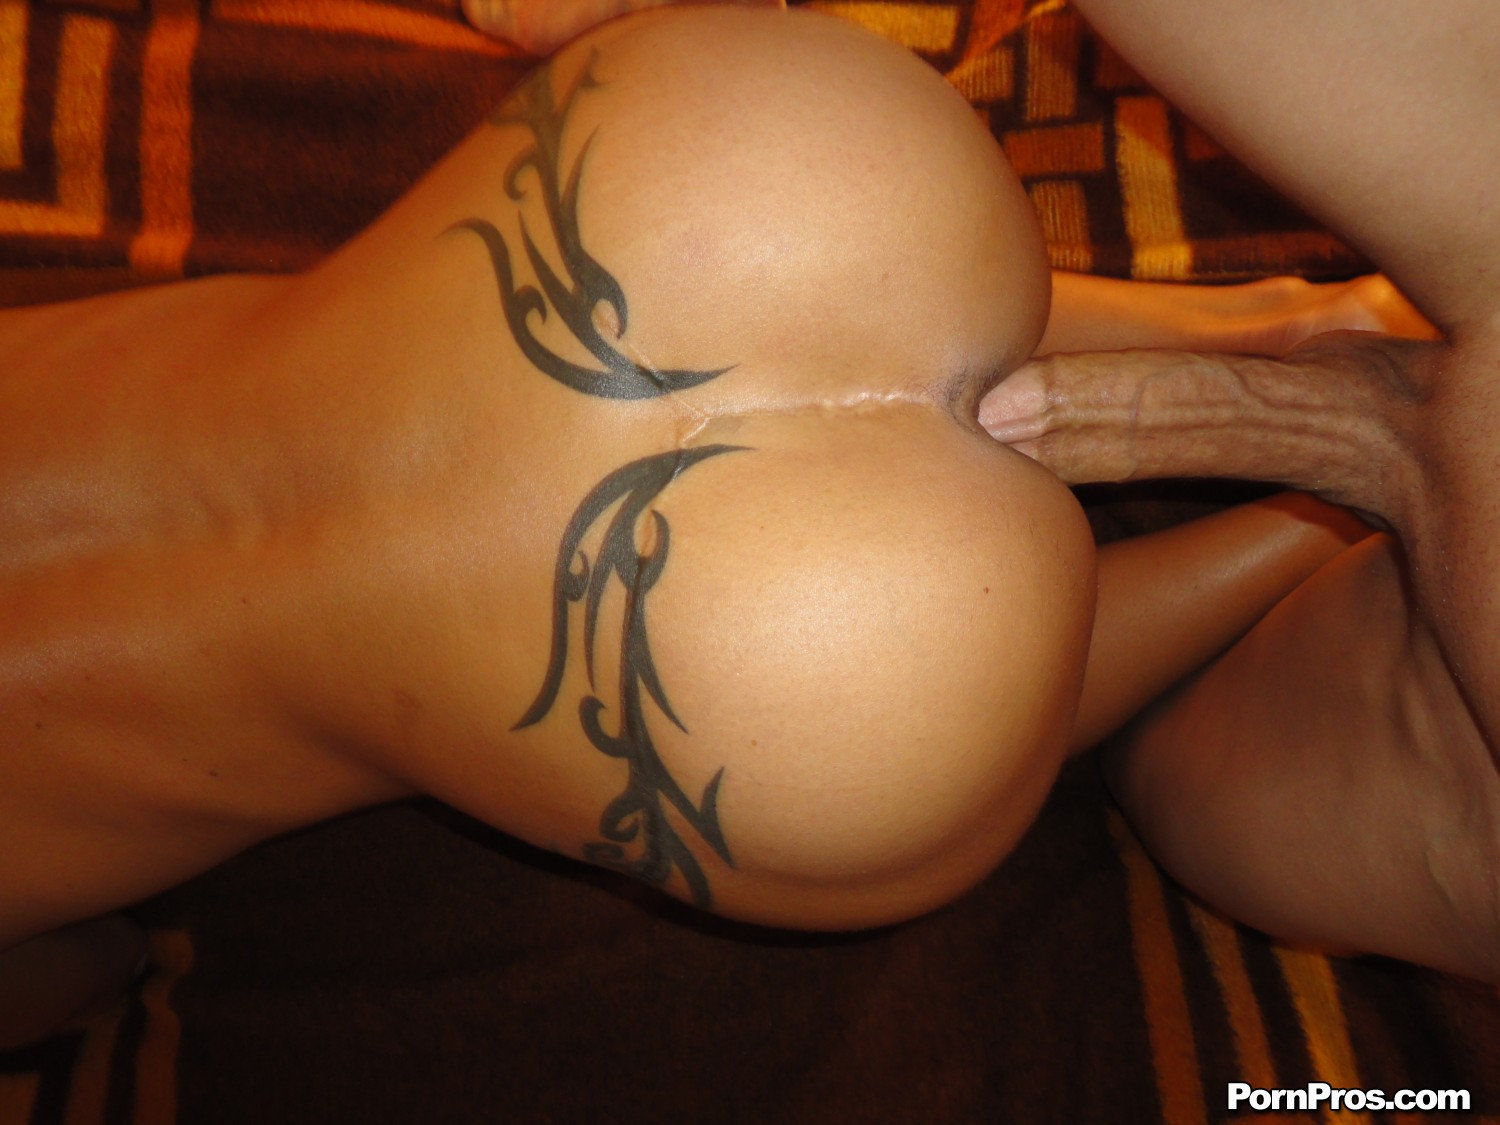 Hotwife getting pounded by bbc 5 7